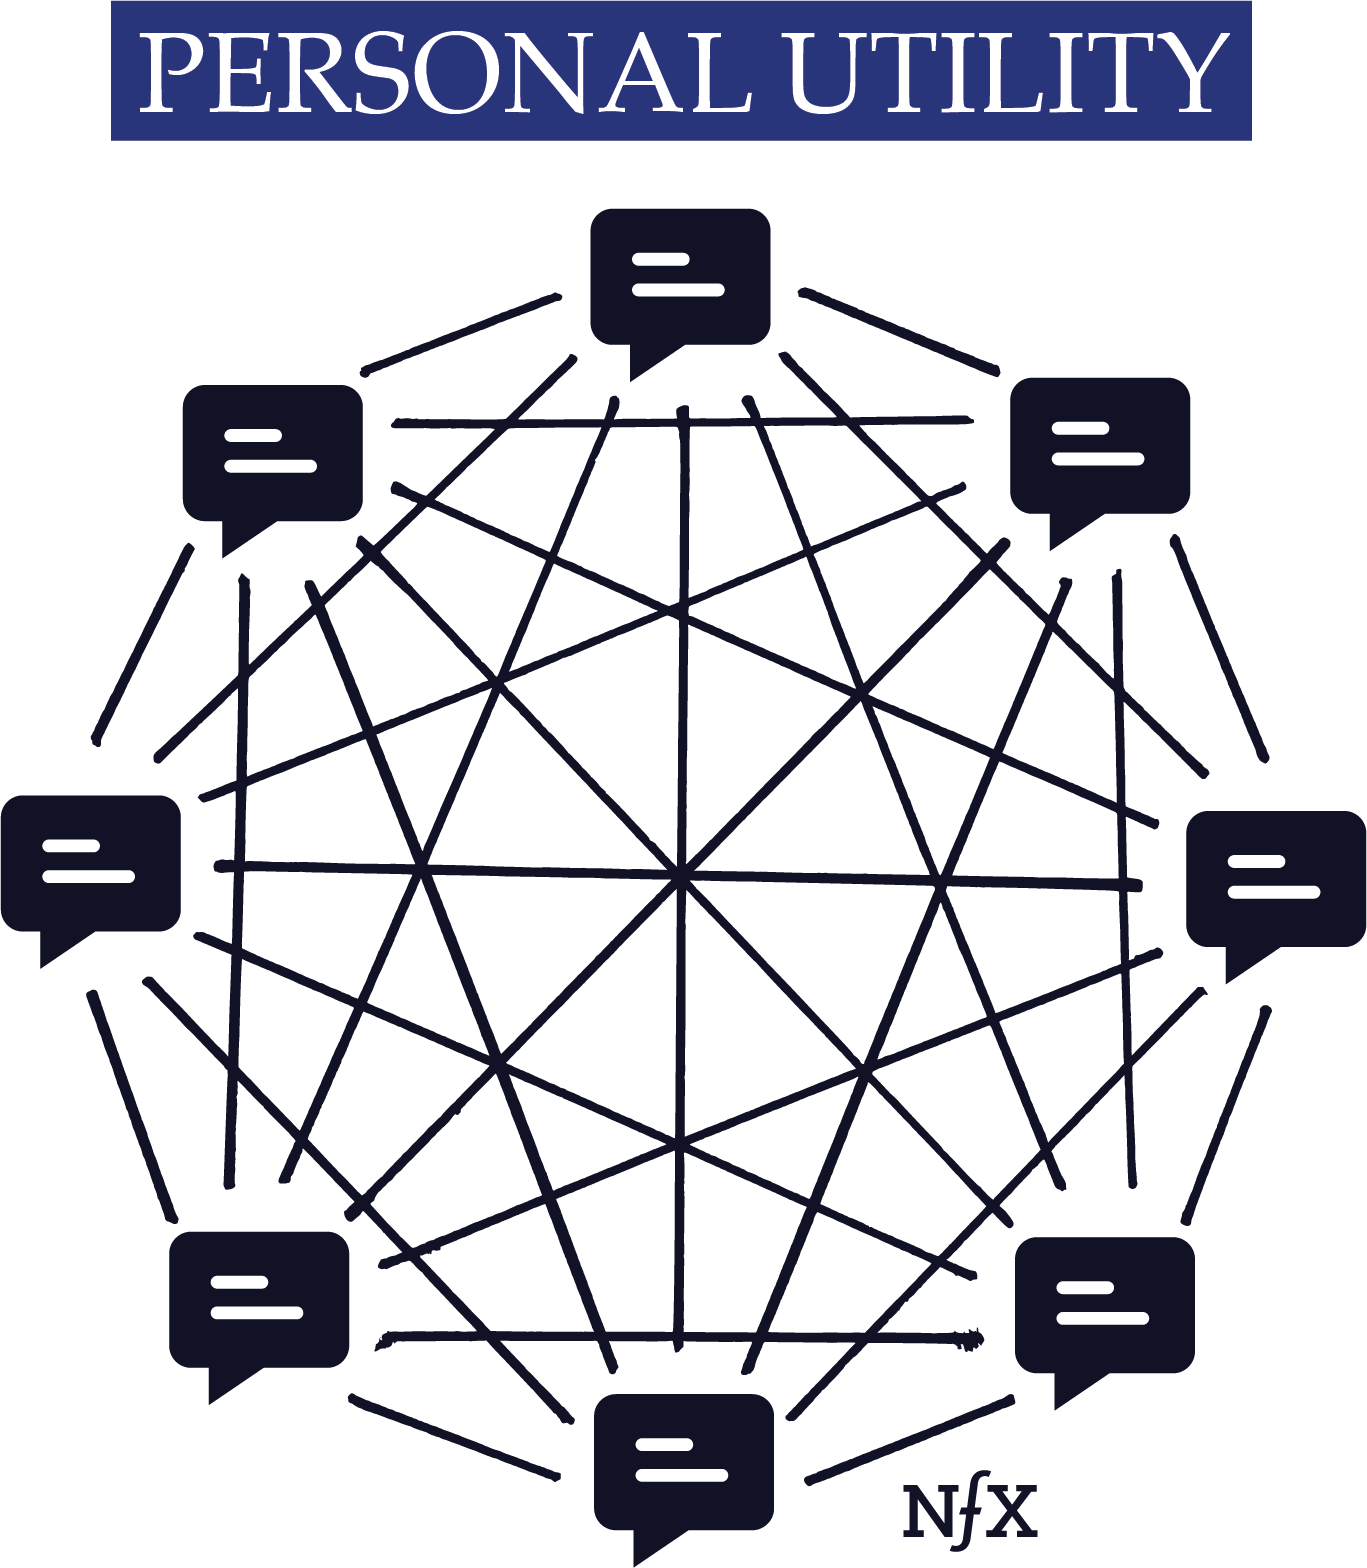 The Network Effects Manual 13 Different And Counting Direct Lift Wiring Diagram In Above Nodes Are Represented By Chat Bubbles Of People Connected Personal Utility Services Links